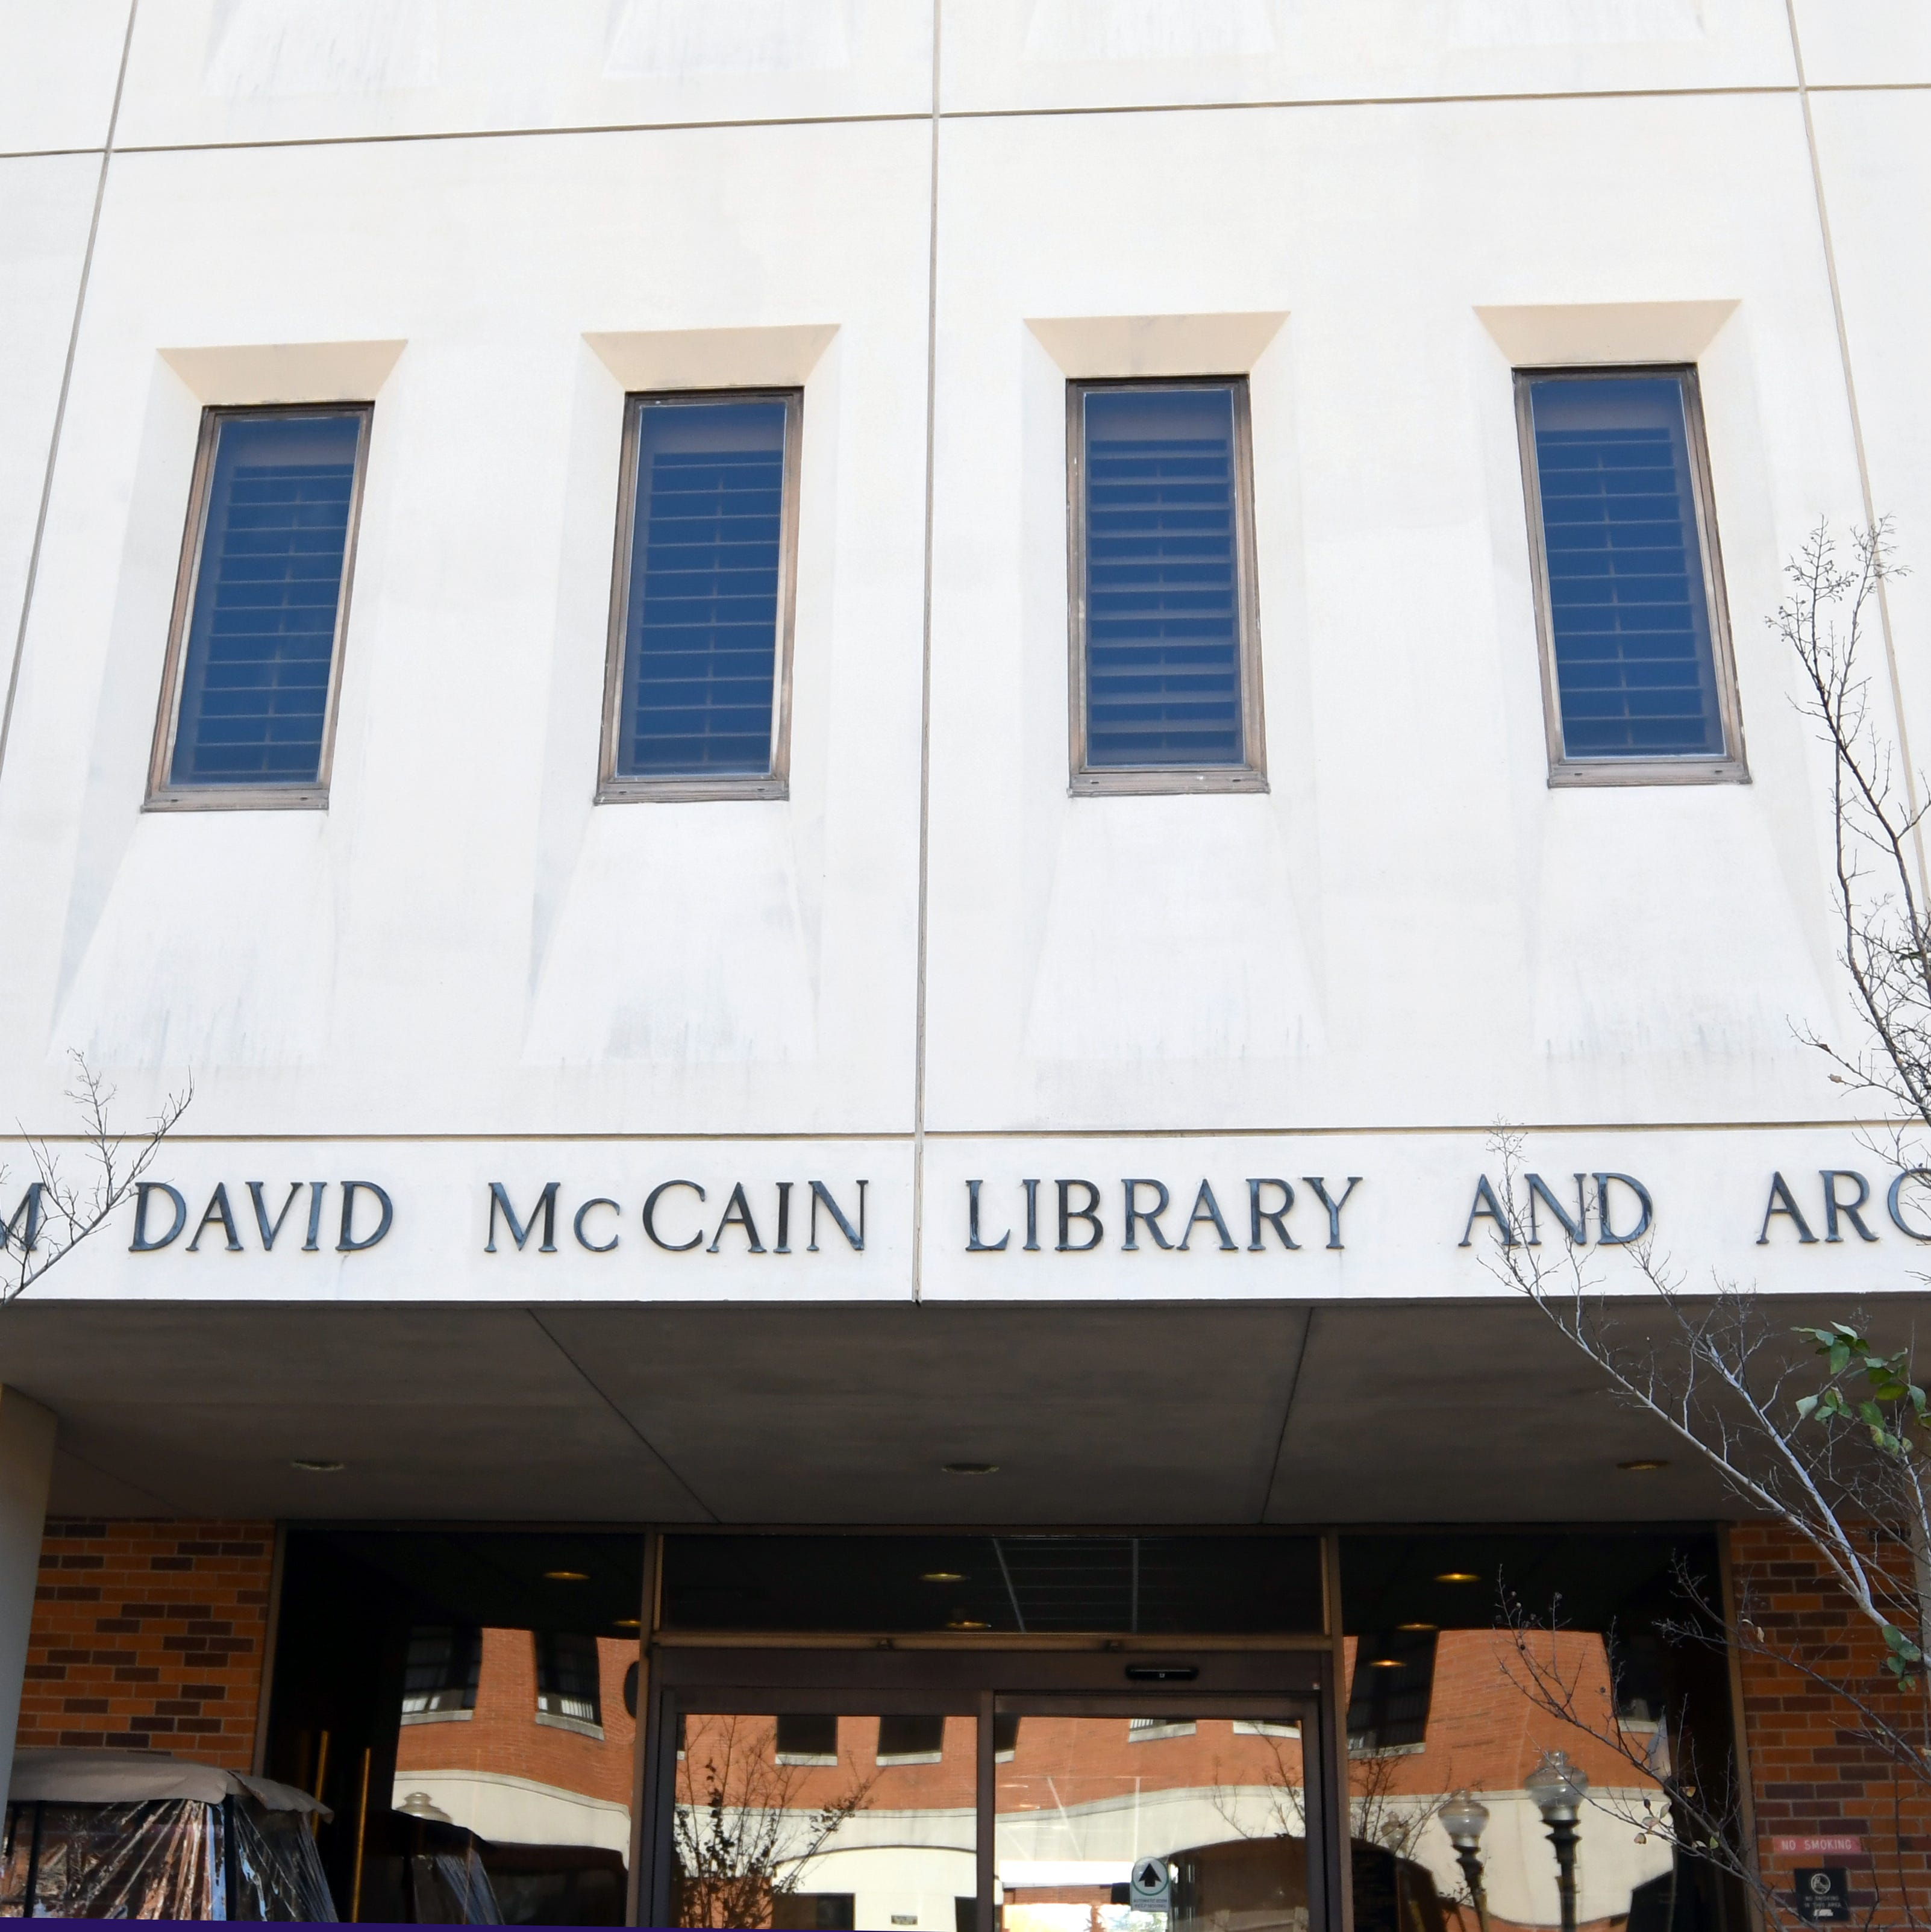 The University of Southern MississippiÕs Student Government Association is looking into how spaces are named at the school. The move comes after a student complained that McCain Library and Archives was named after fifth Southern Miss President William McCain, who may have been opposed to desegregation at the university.